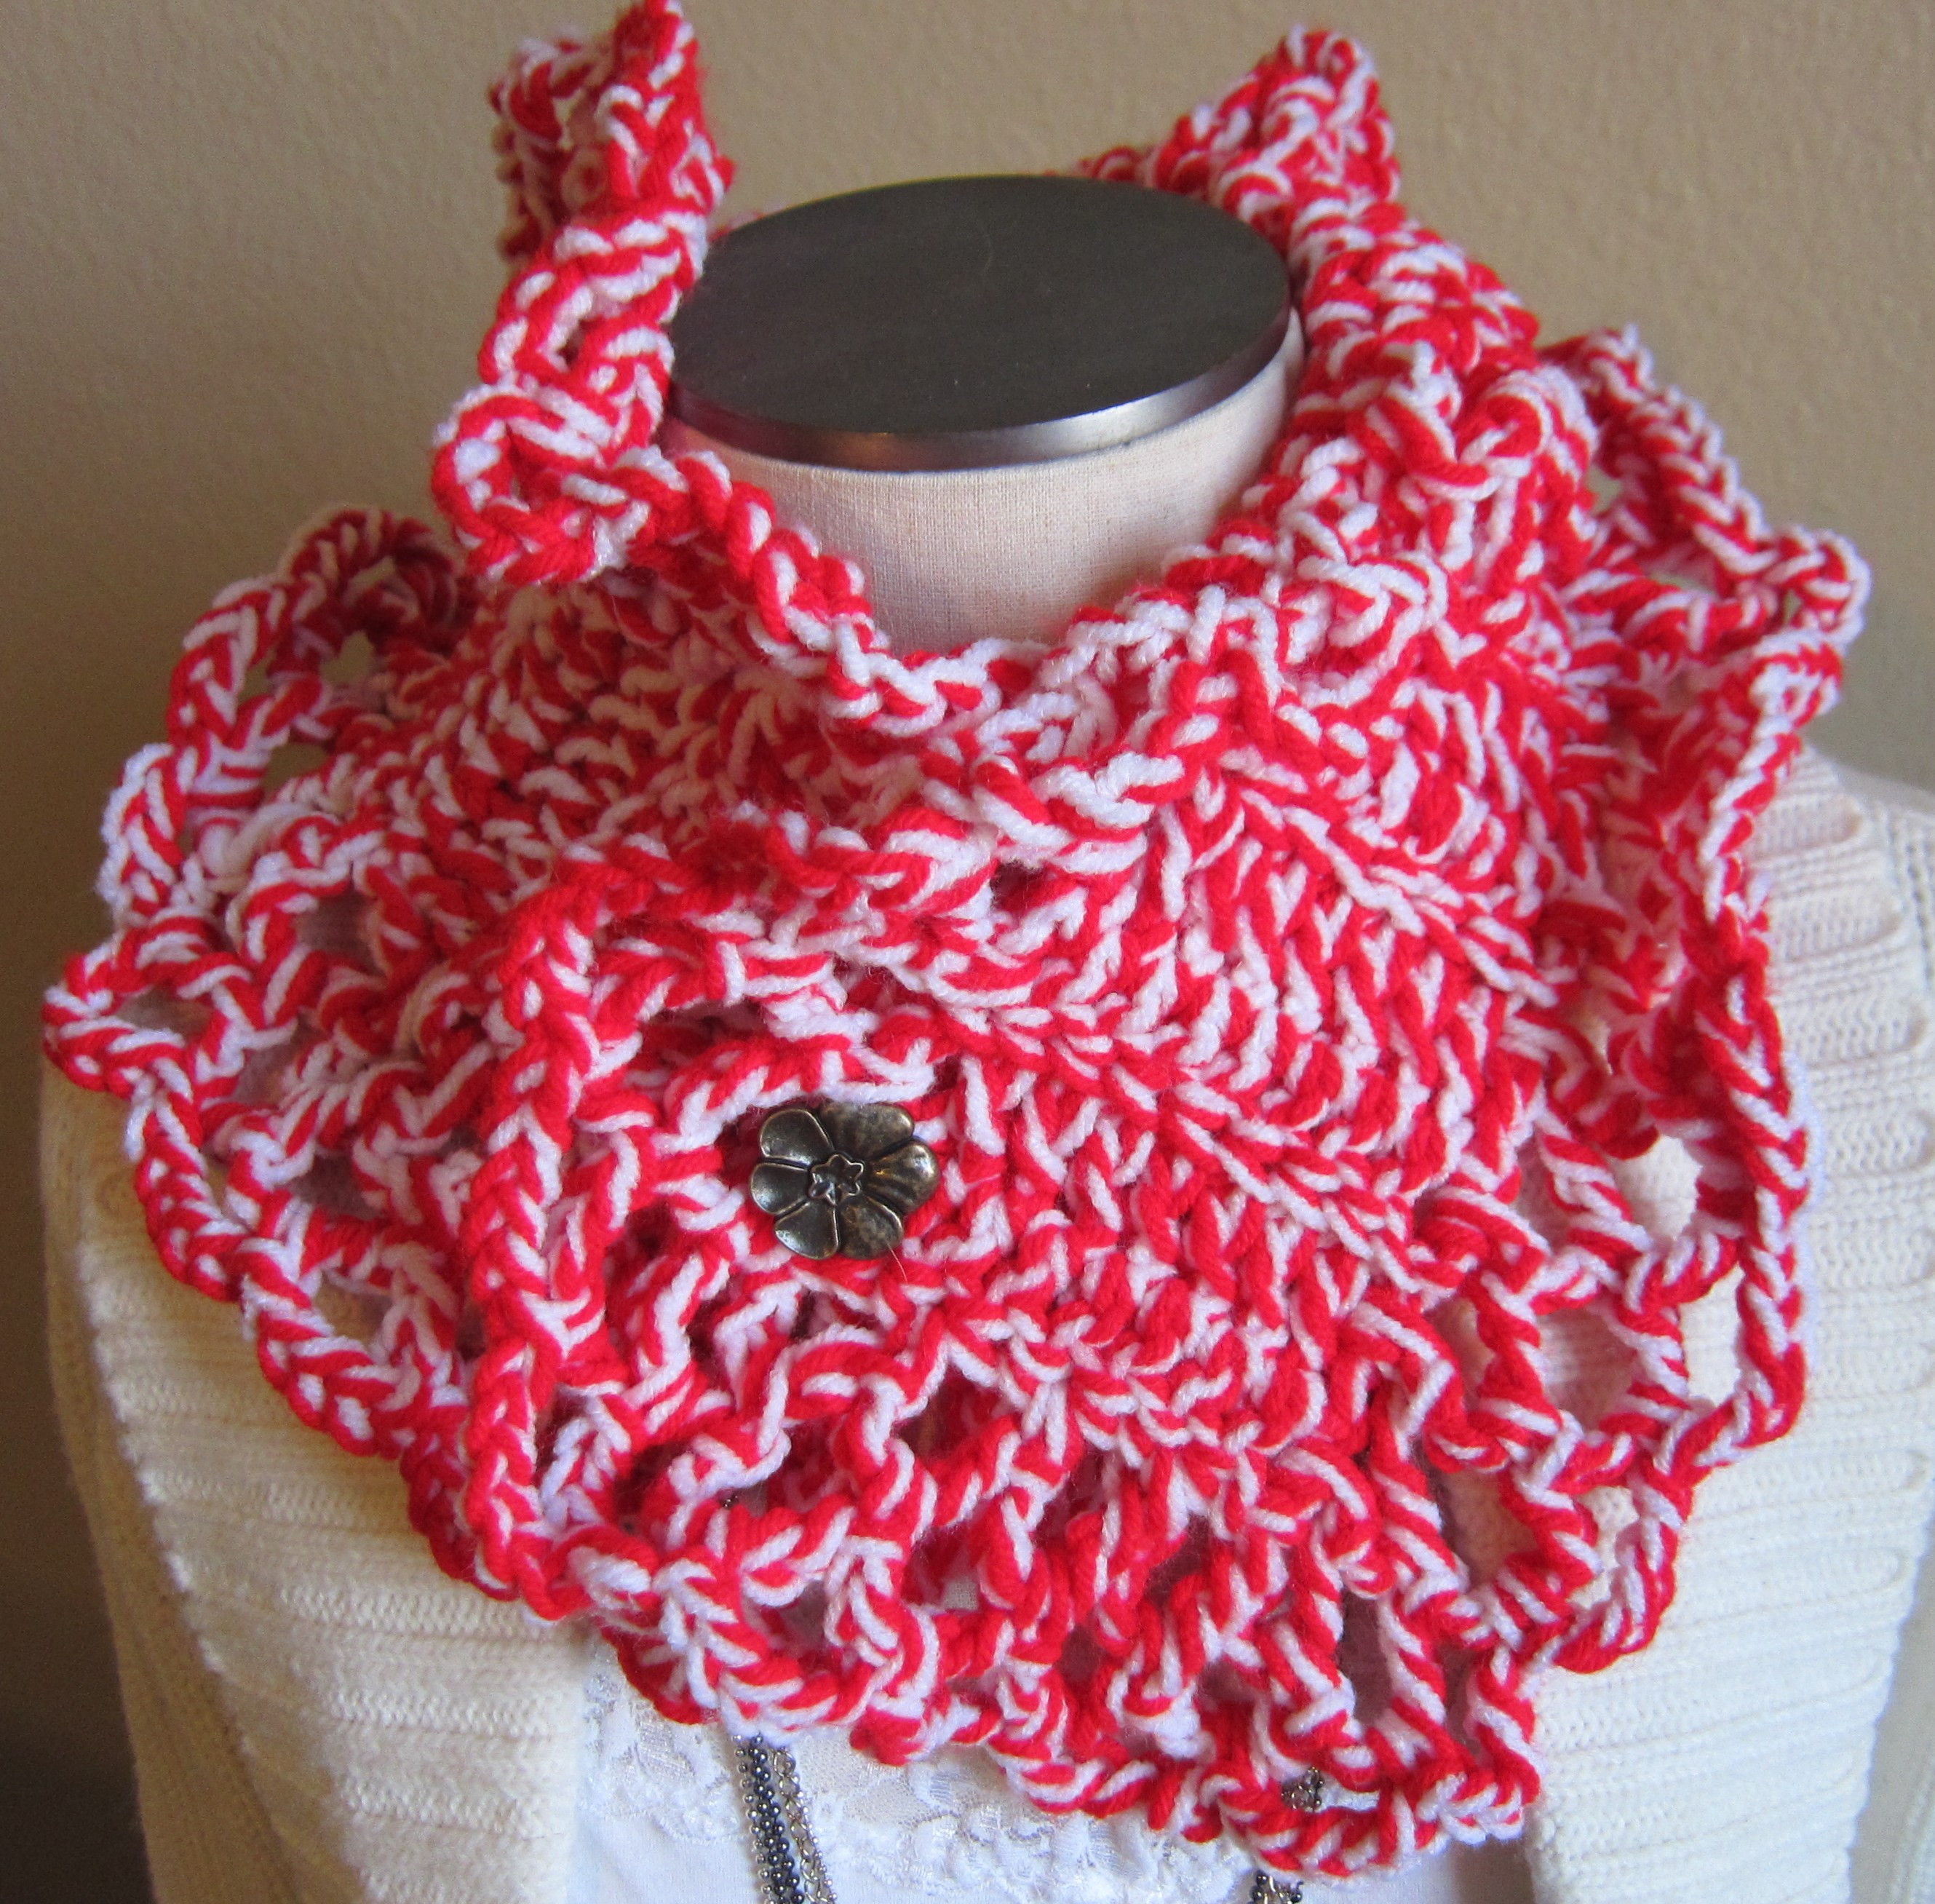 Crochet Neck Scarf Awesome Crochet Neck Warmer Scarf with Flower button Made with 100 Of Great 50 Ideas Crochet Neck Scarf